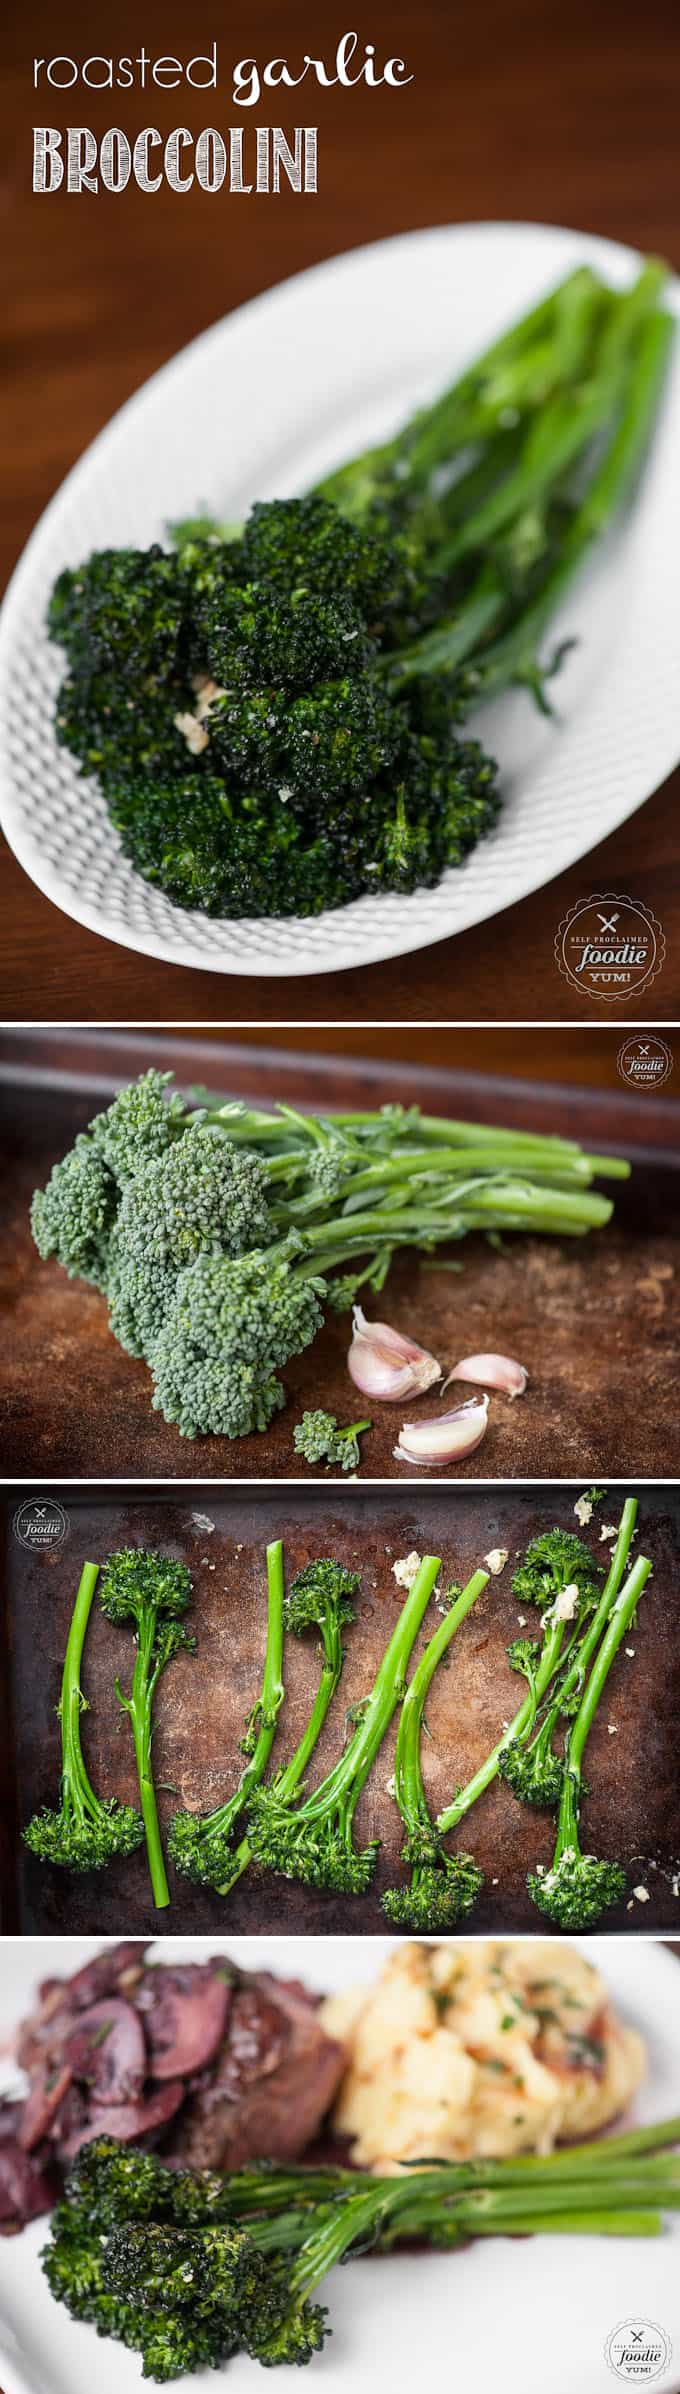 A side dish of tender Roasted Garlic Broccolini is not only super easy to make, but it is a delicious dark green vegetable perfect for any family dinner.